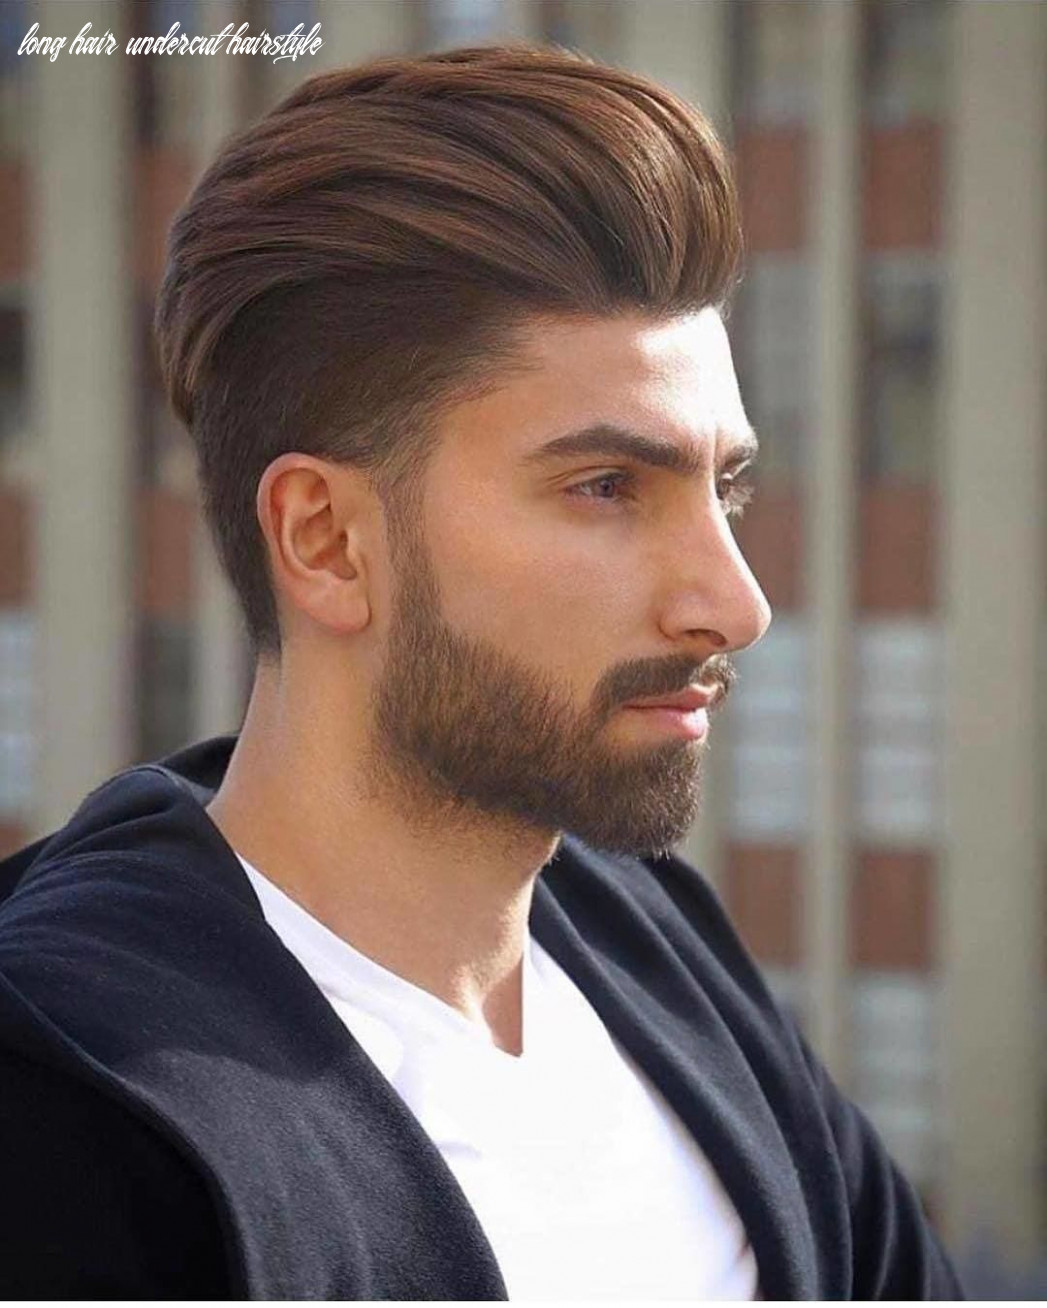 9 cool undercut hairstyles for men | undercut hairstyles, mens